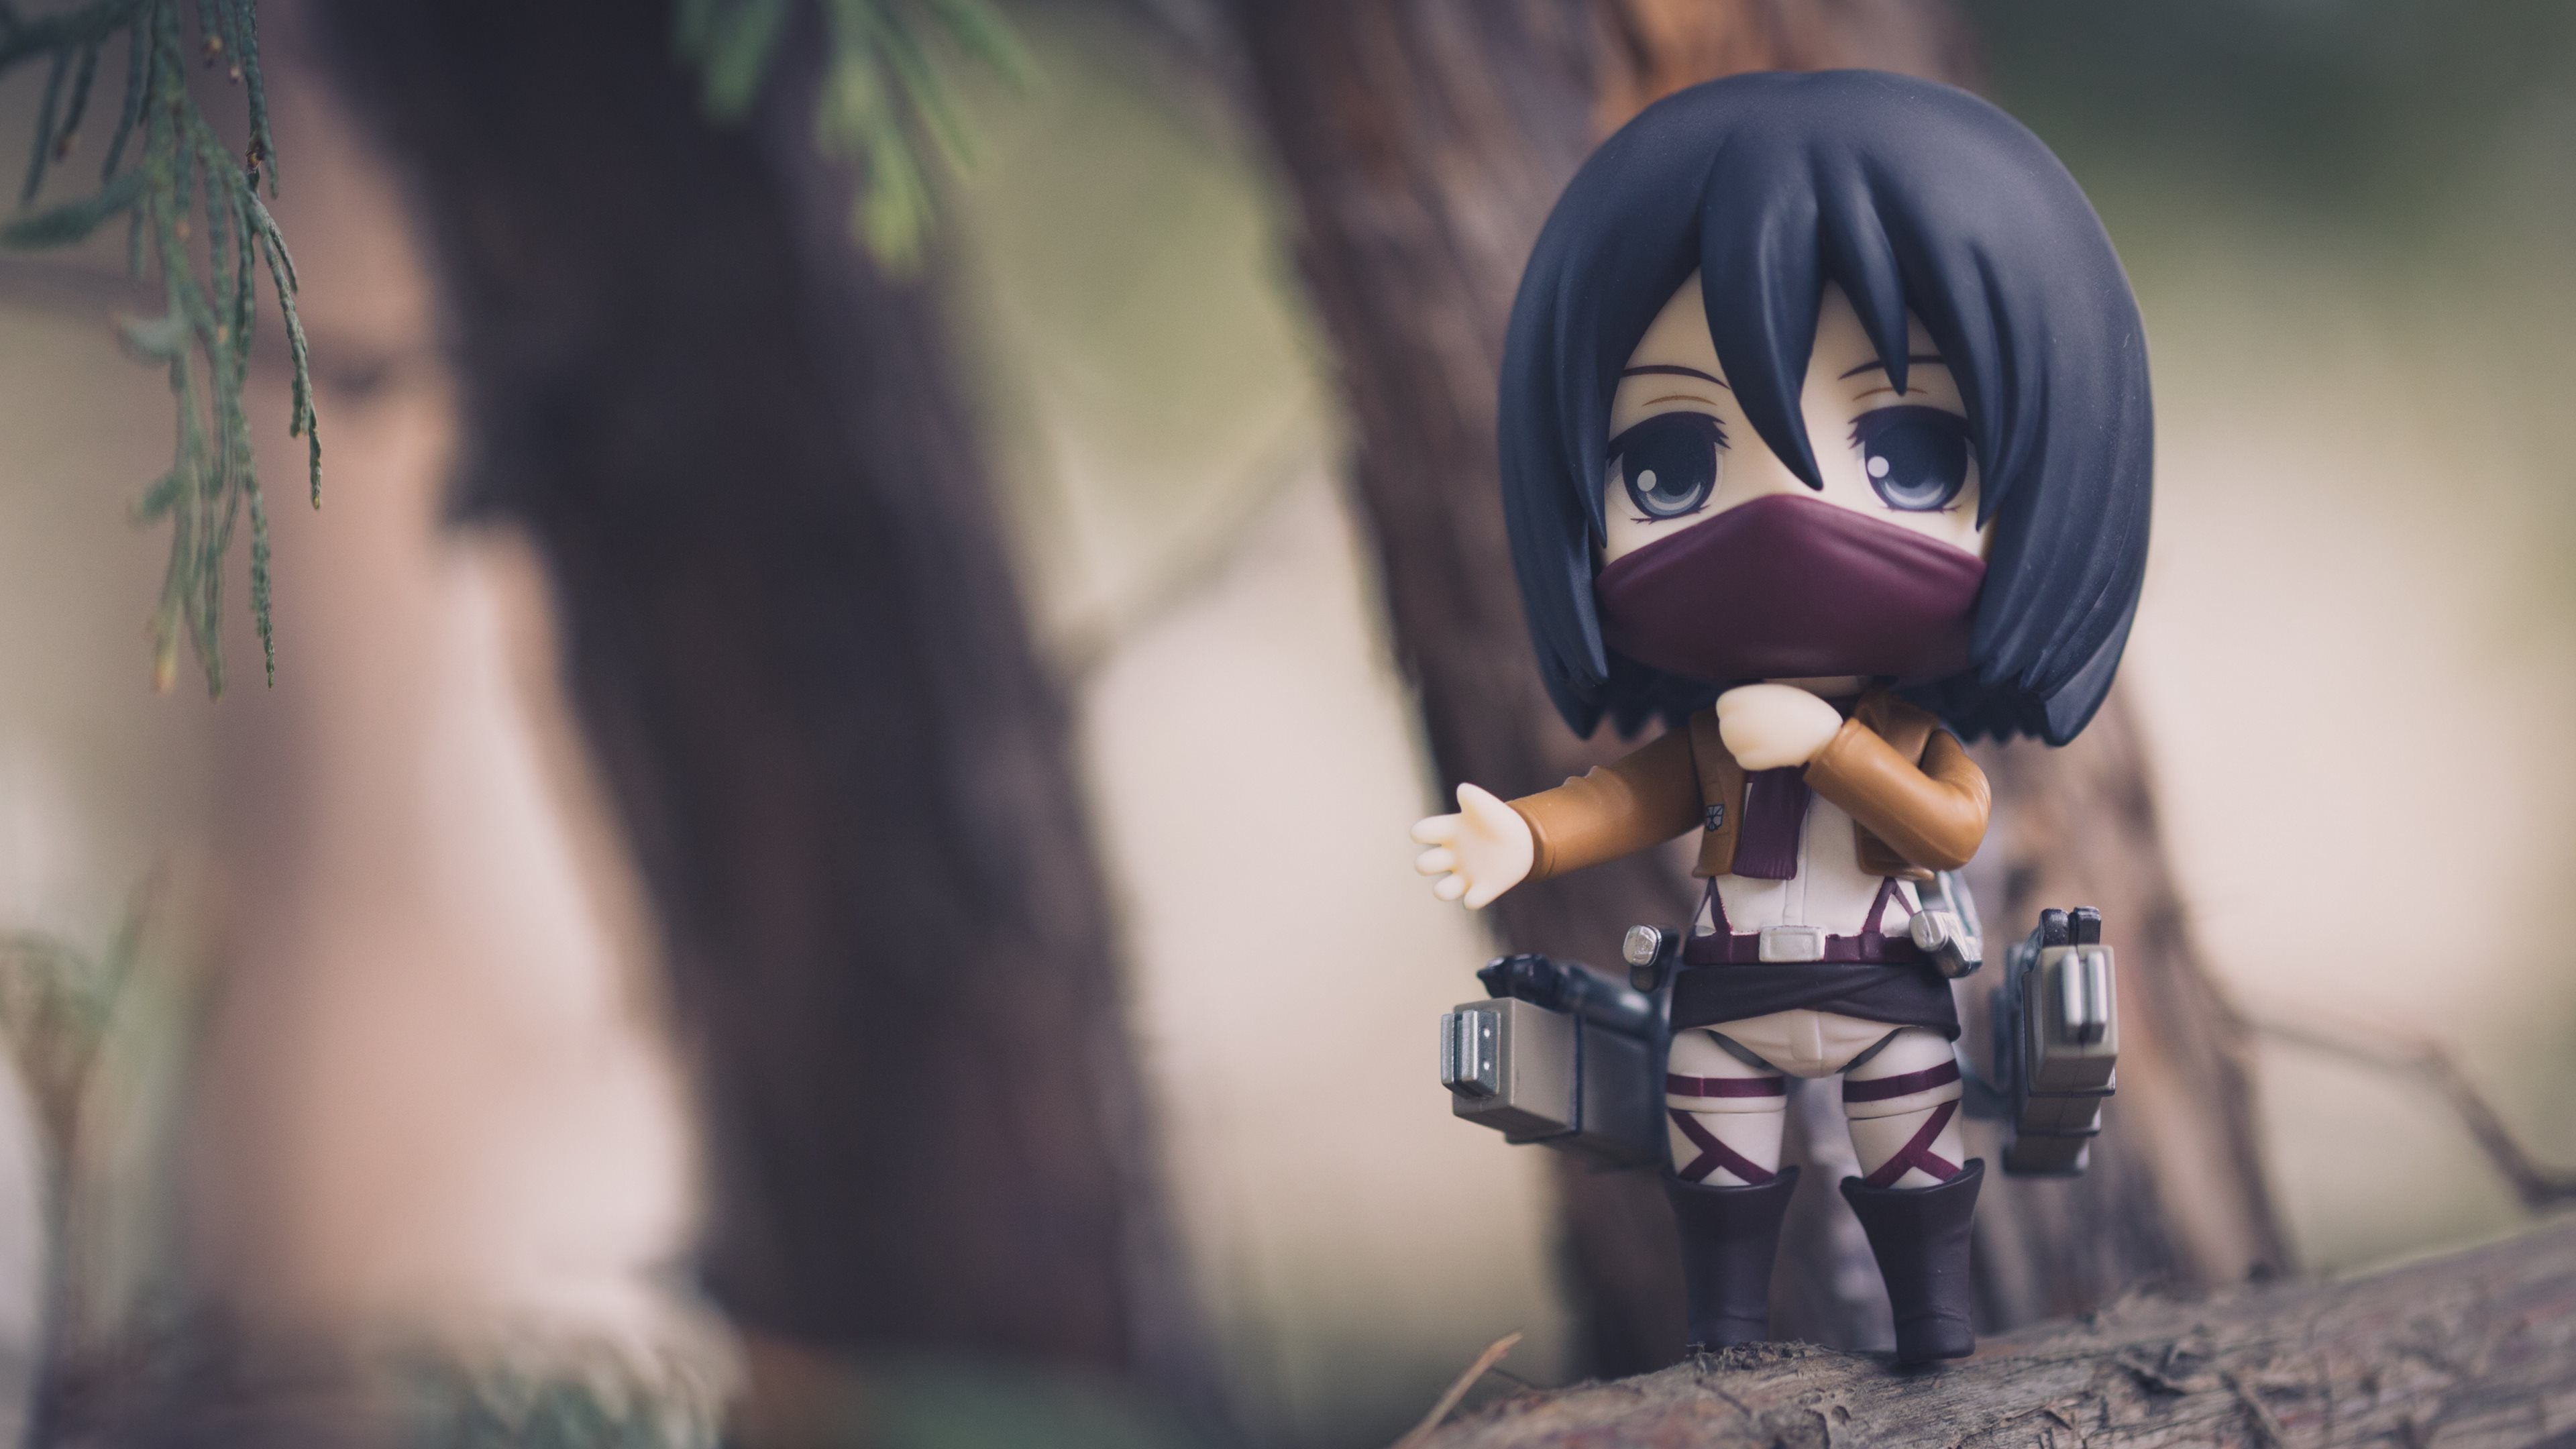 Mikasa Ackerman Wallpaper Hd Pc 3840x2160 Wallpaper Teahub Io